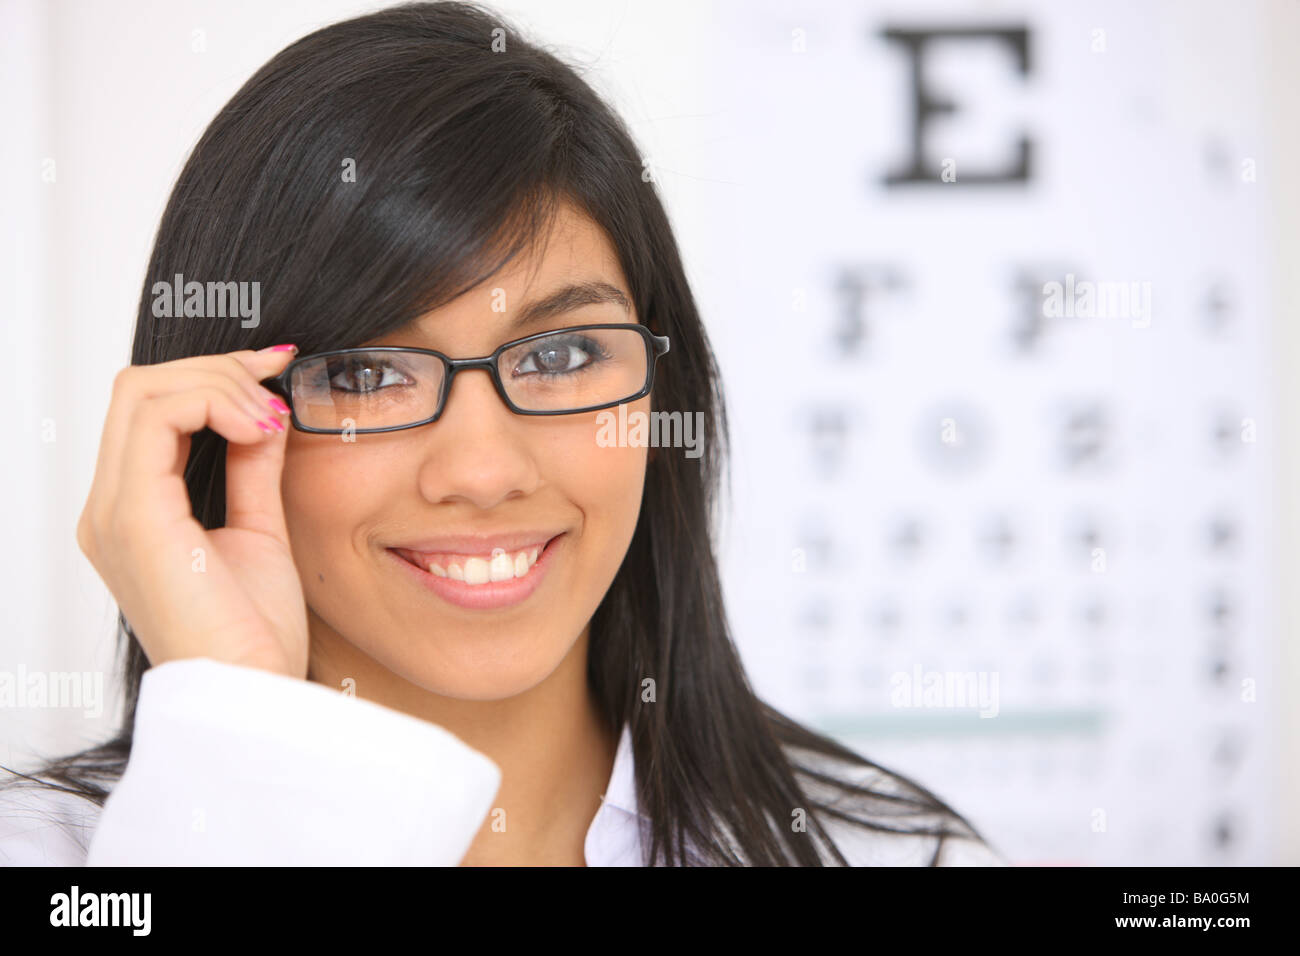 Young woman with glasses eye chart in background - Stock Image